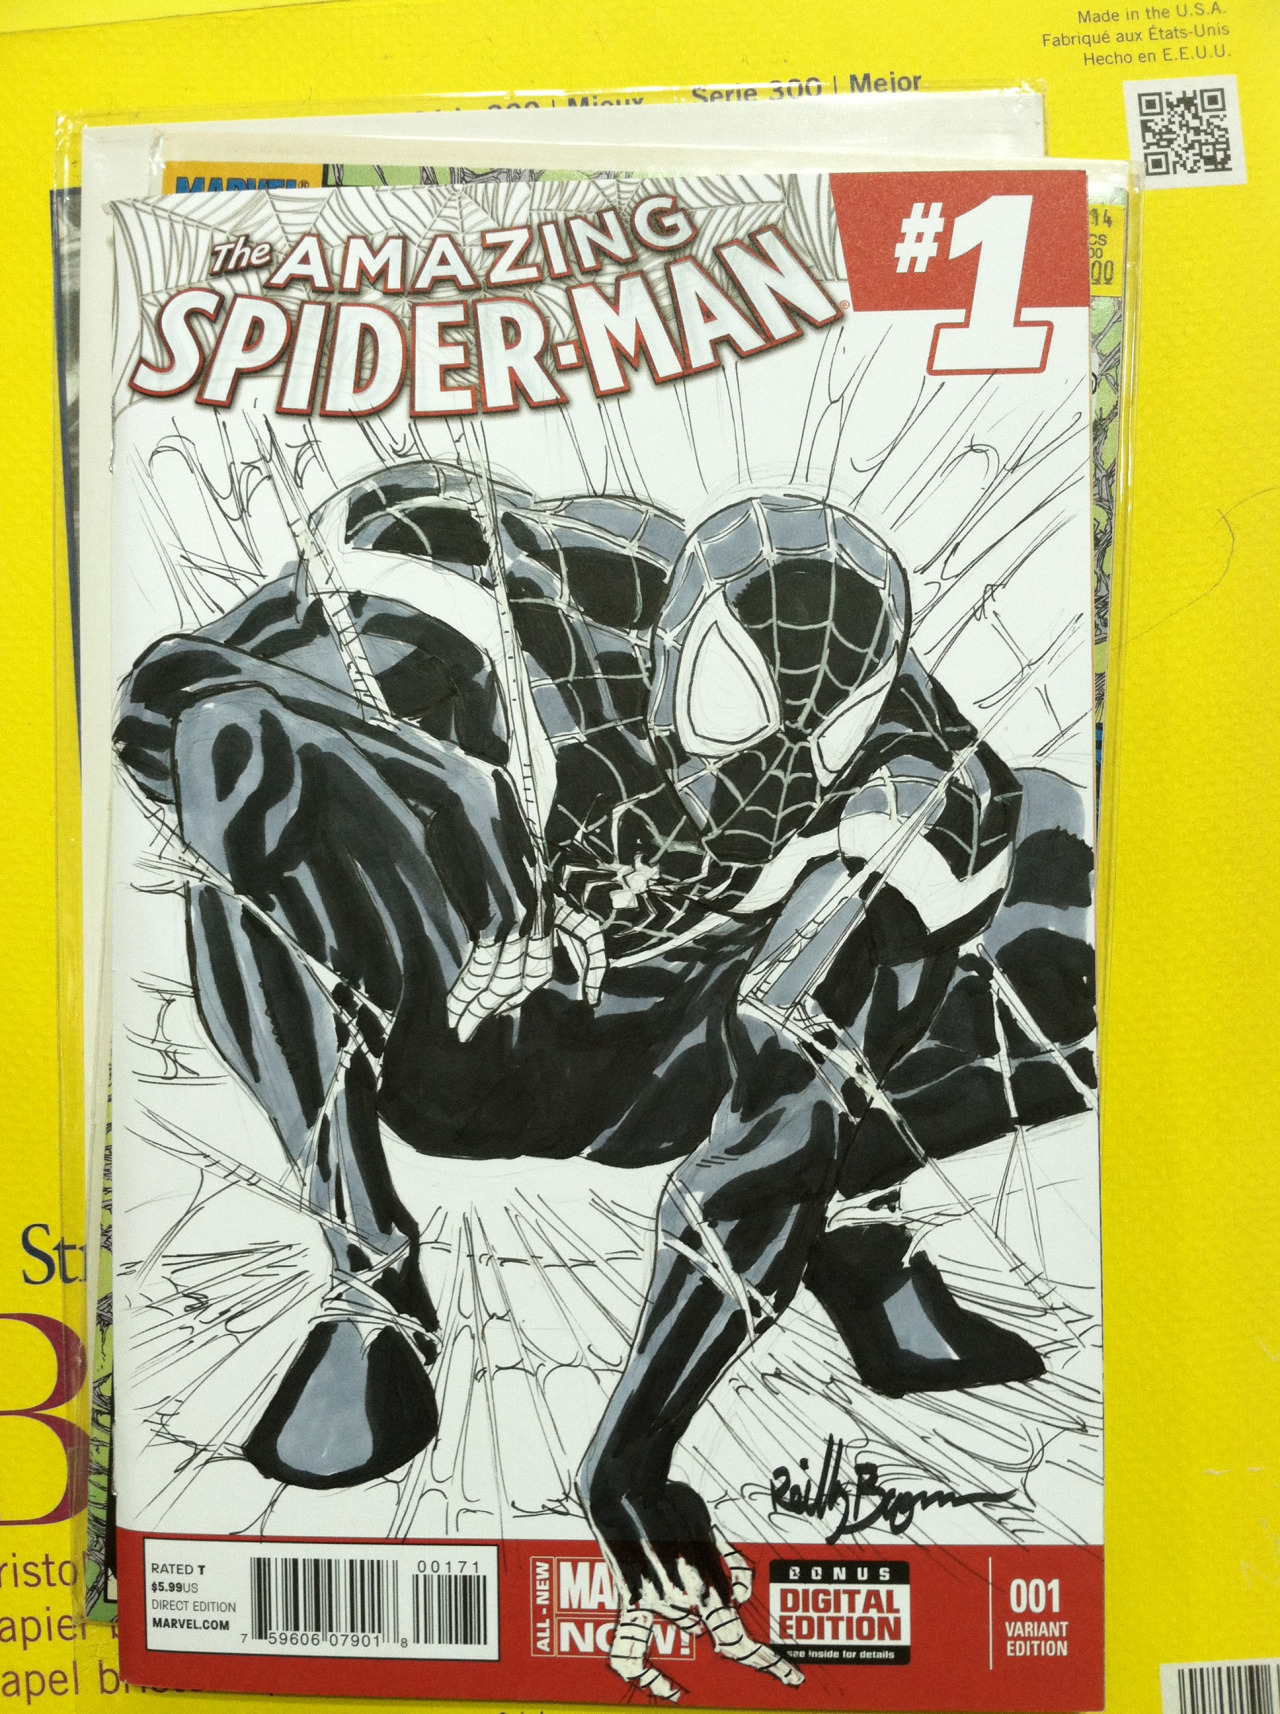 Miles Morales in the classic pose form McFarlane's Spider-Man #1